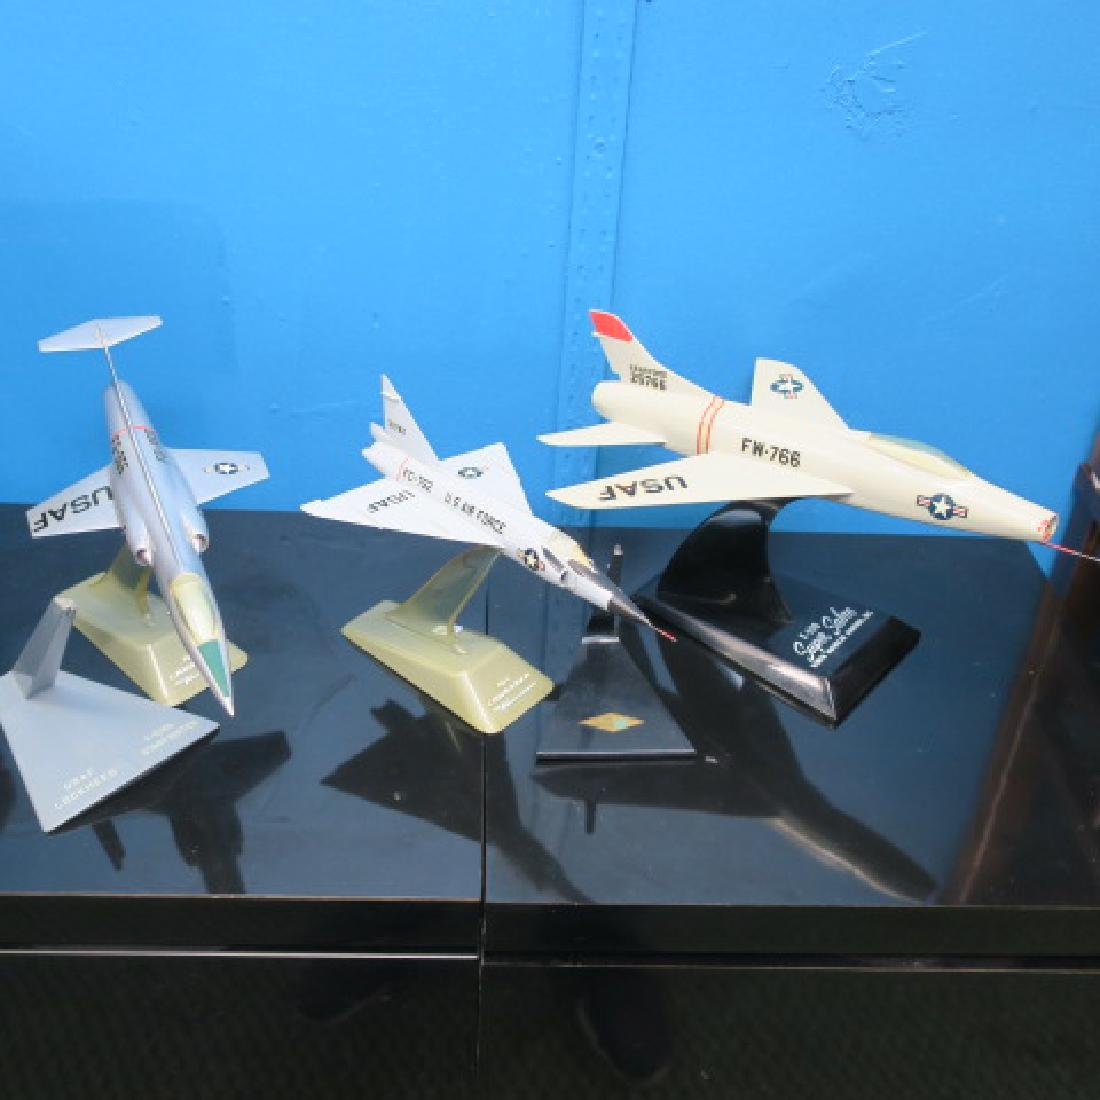 Three Manufacturers Models of F-100 series Fighters: